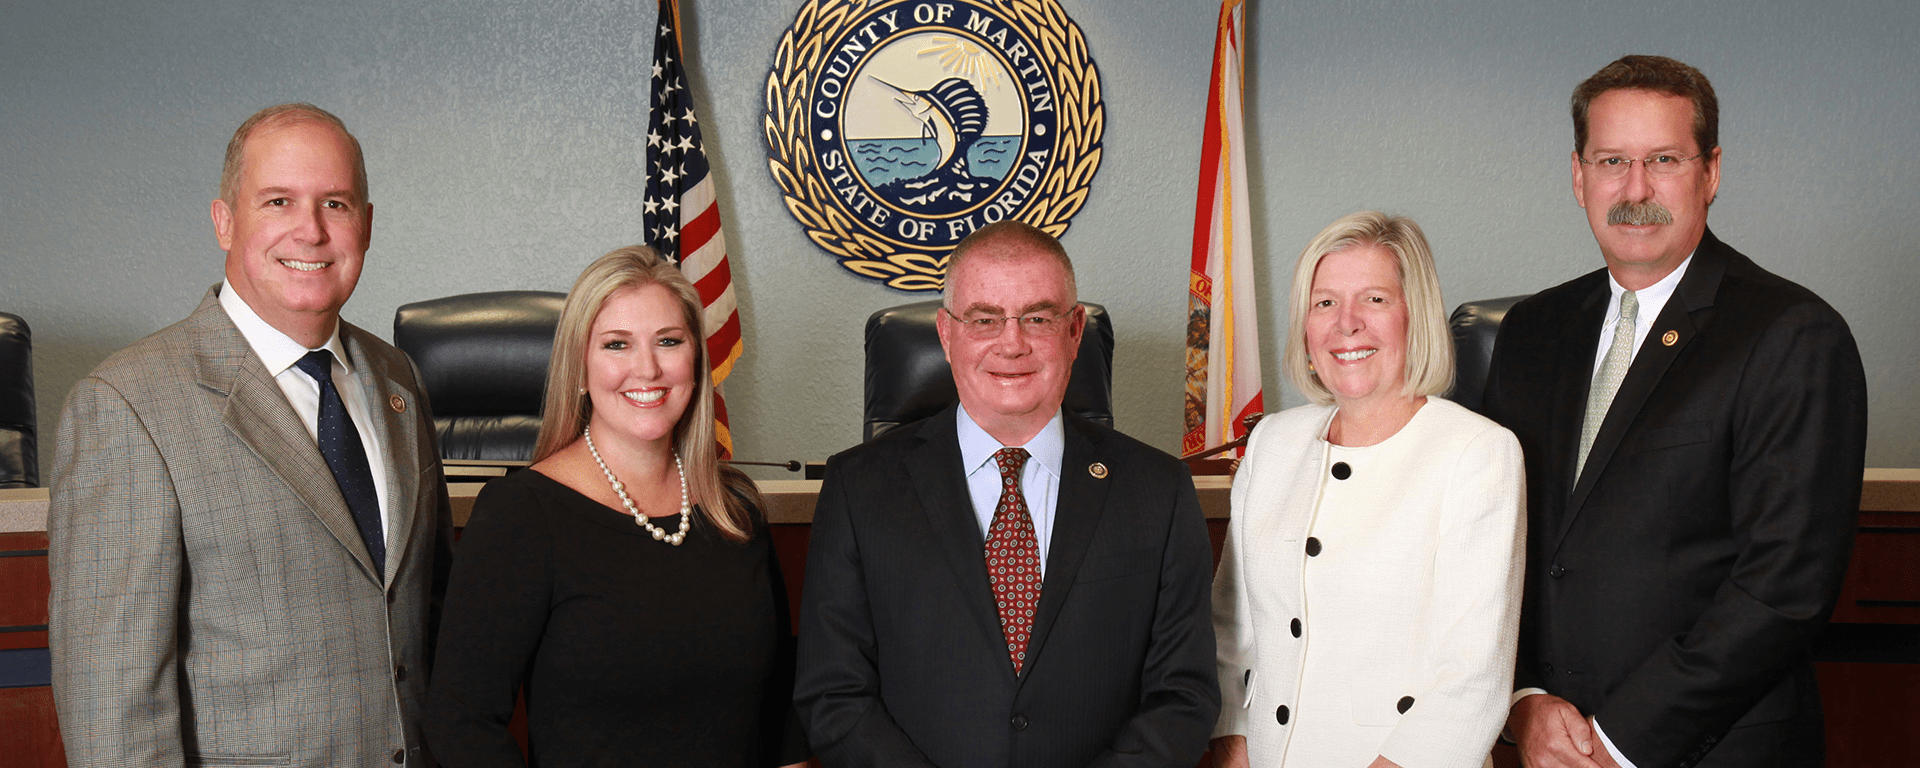 Martin County Board of County Commissioners